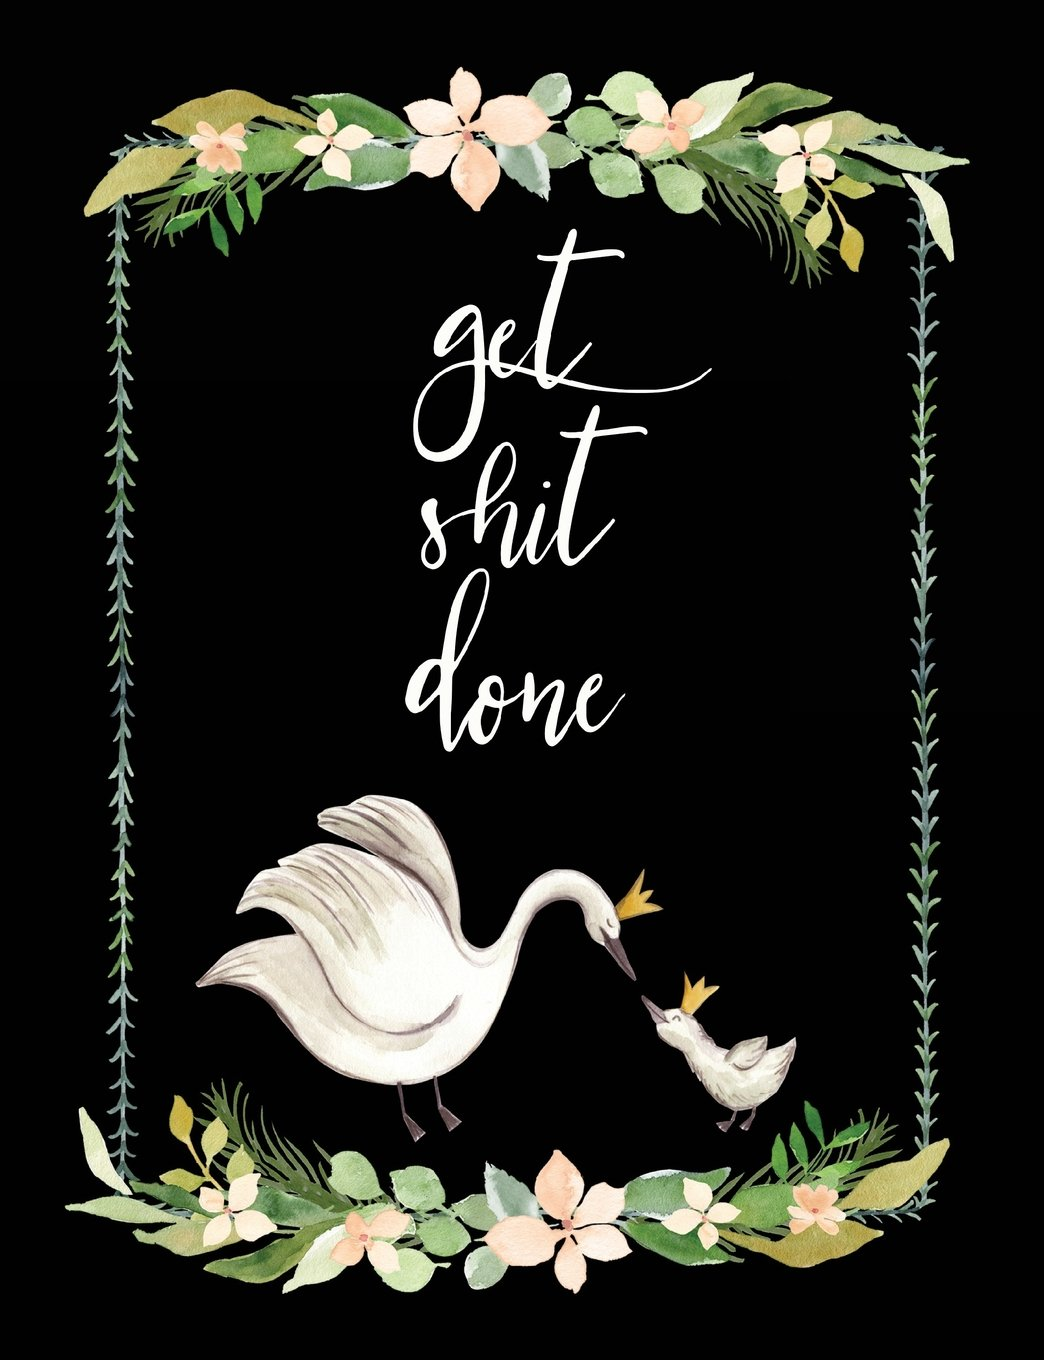 Read Online Get Shit Done: Composition Notebook Journal Blank Wide-Ruled Lined Paper 202 Pages 7.44x9.69 Gift pdf